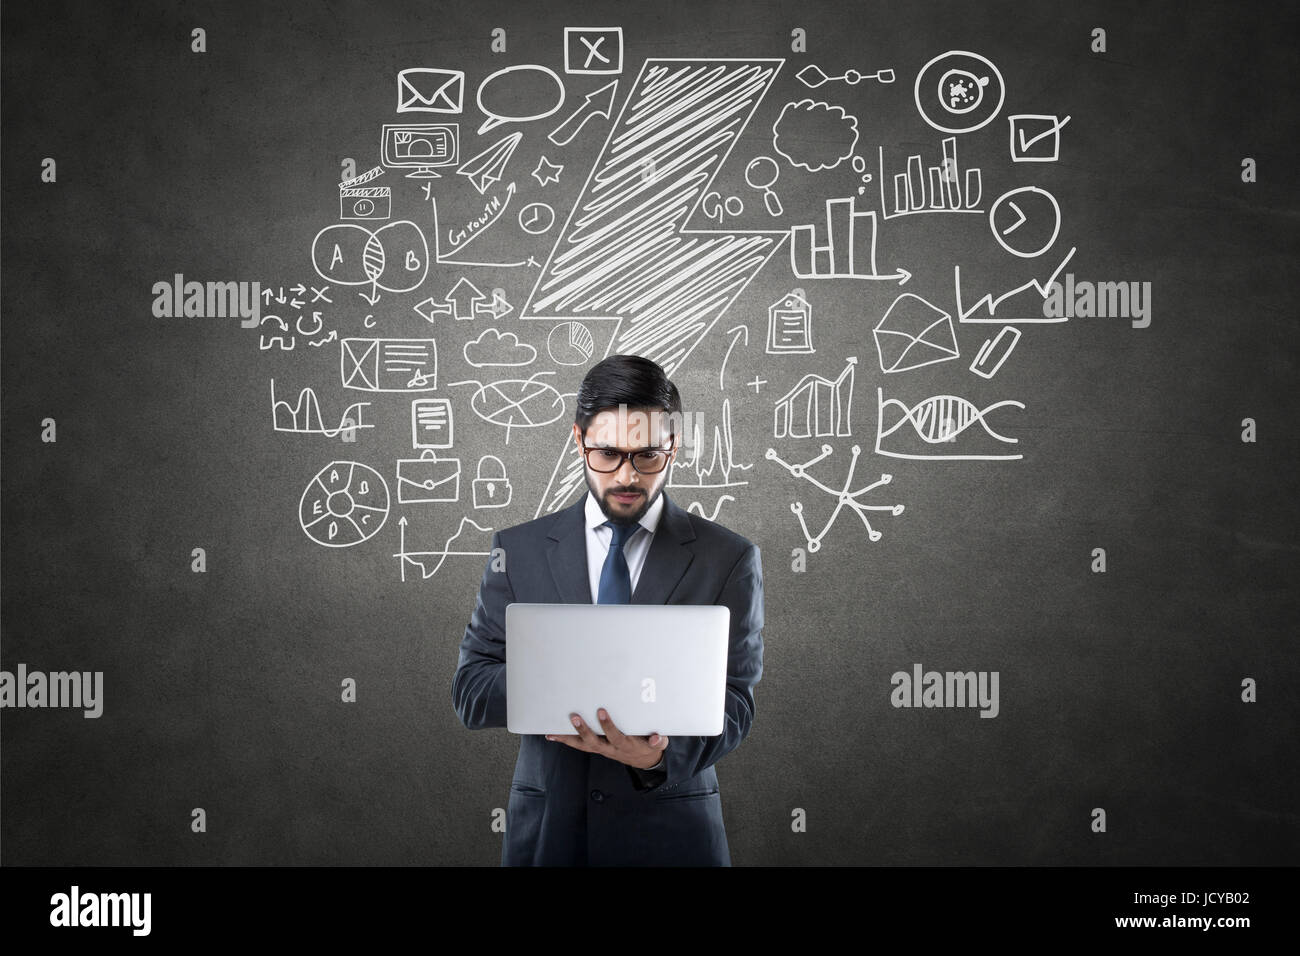 Businessman using laptop in front of blackboard with icons - Stock Image